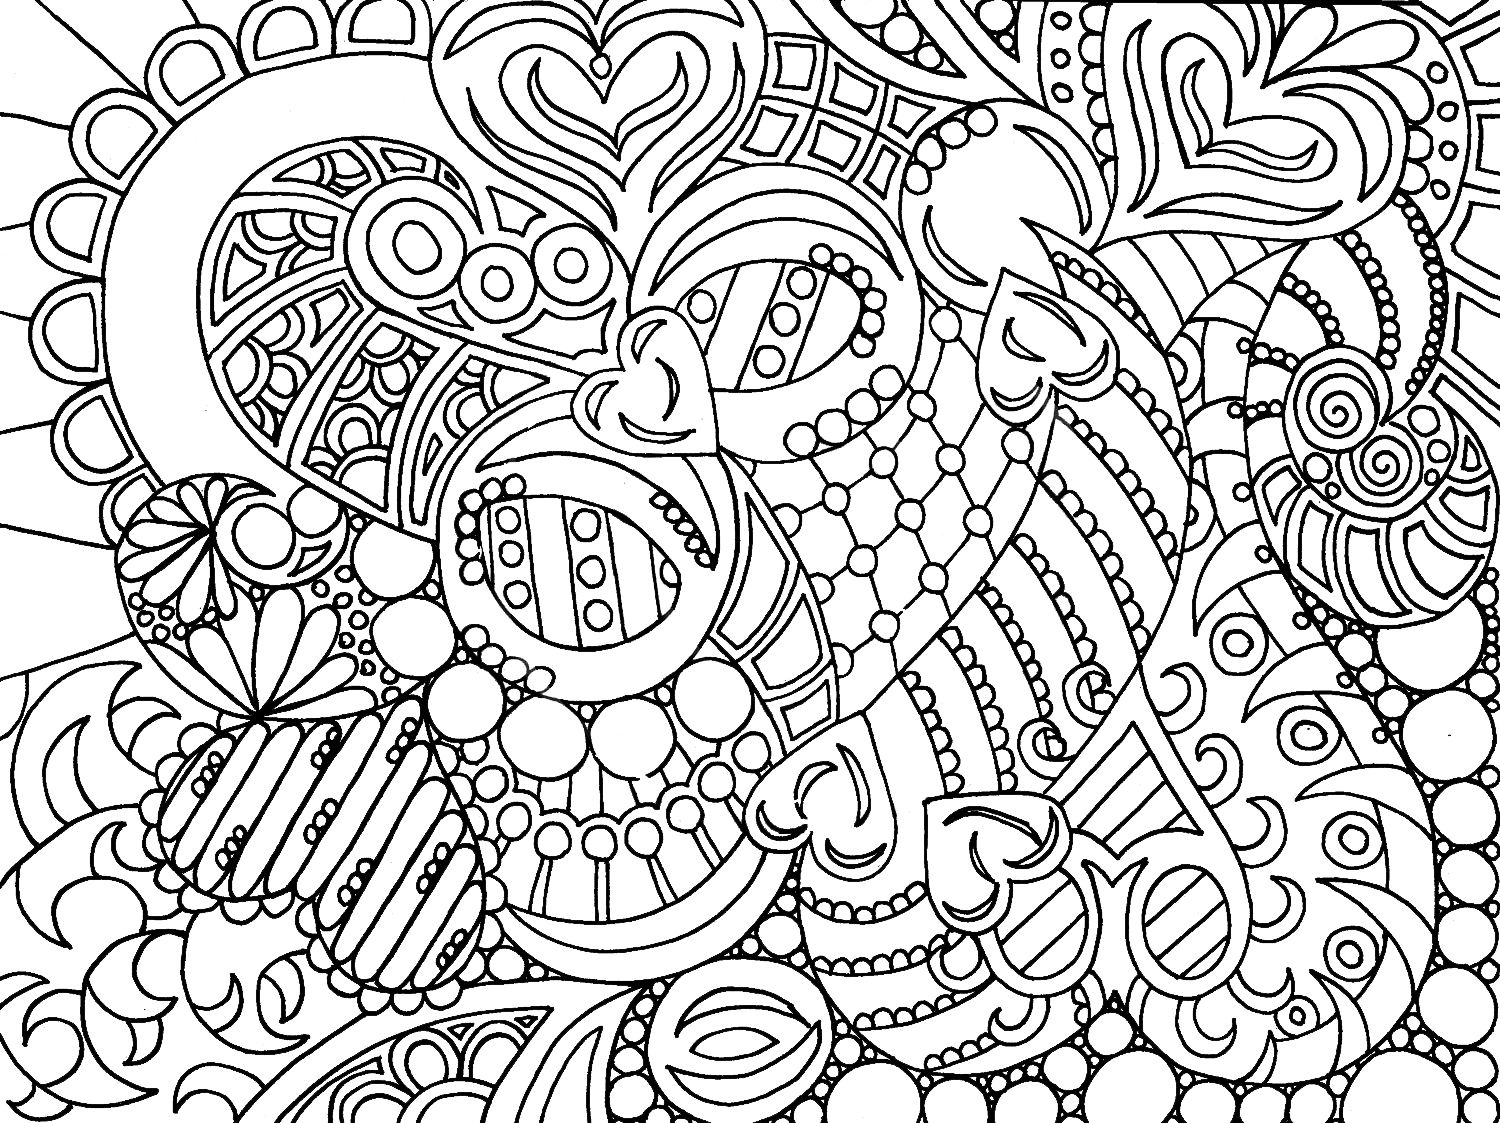 Abstract Coloring Pages Printable Sheets For Kids Get The Latest Free Images Favorite To Print